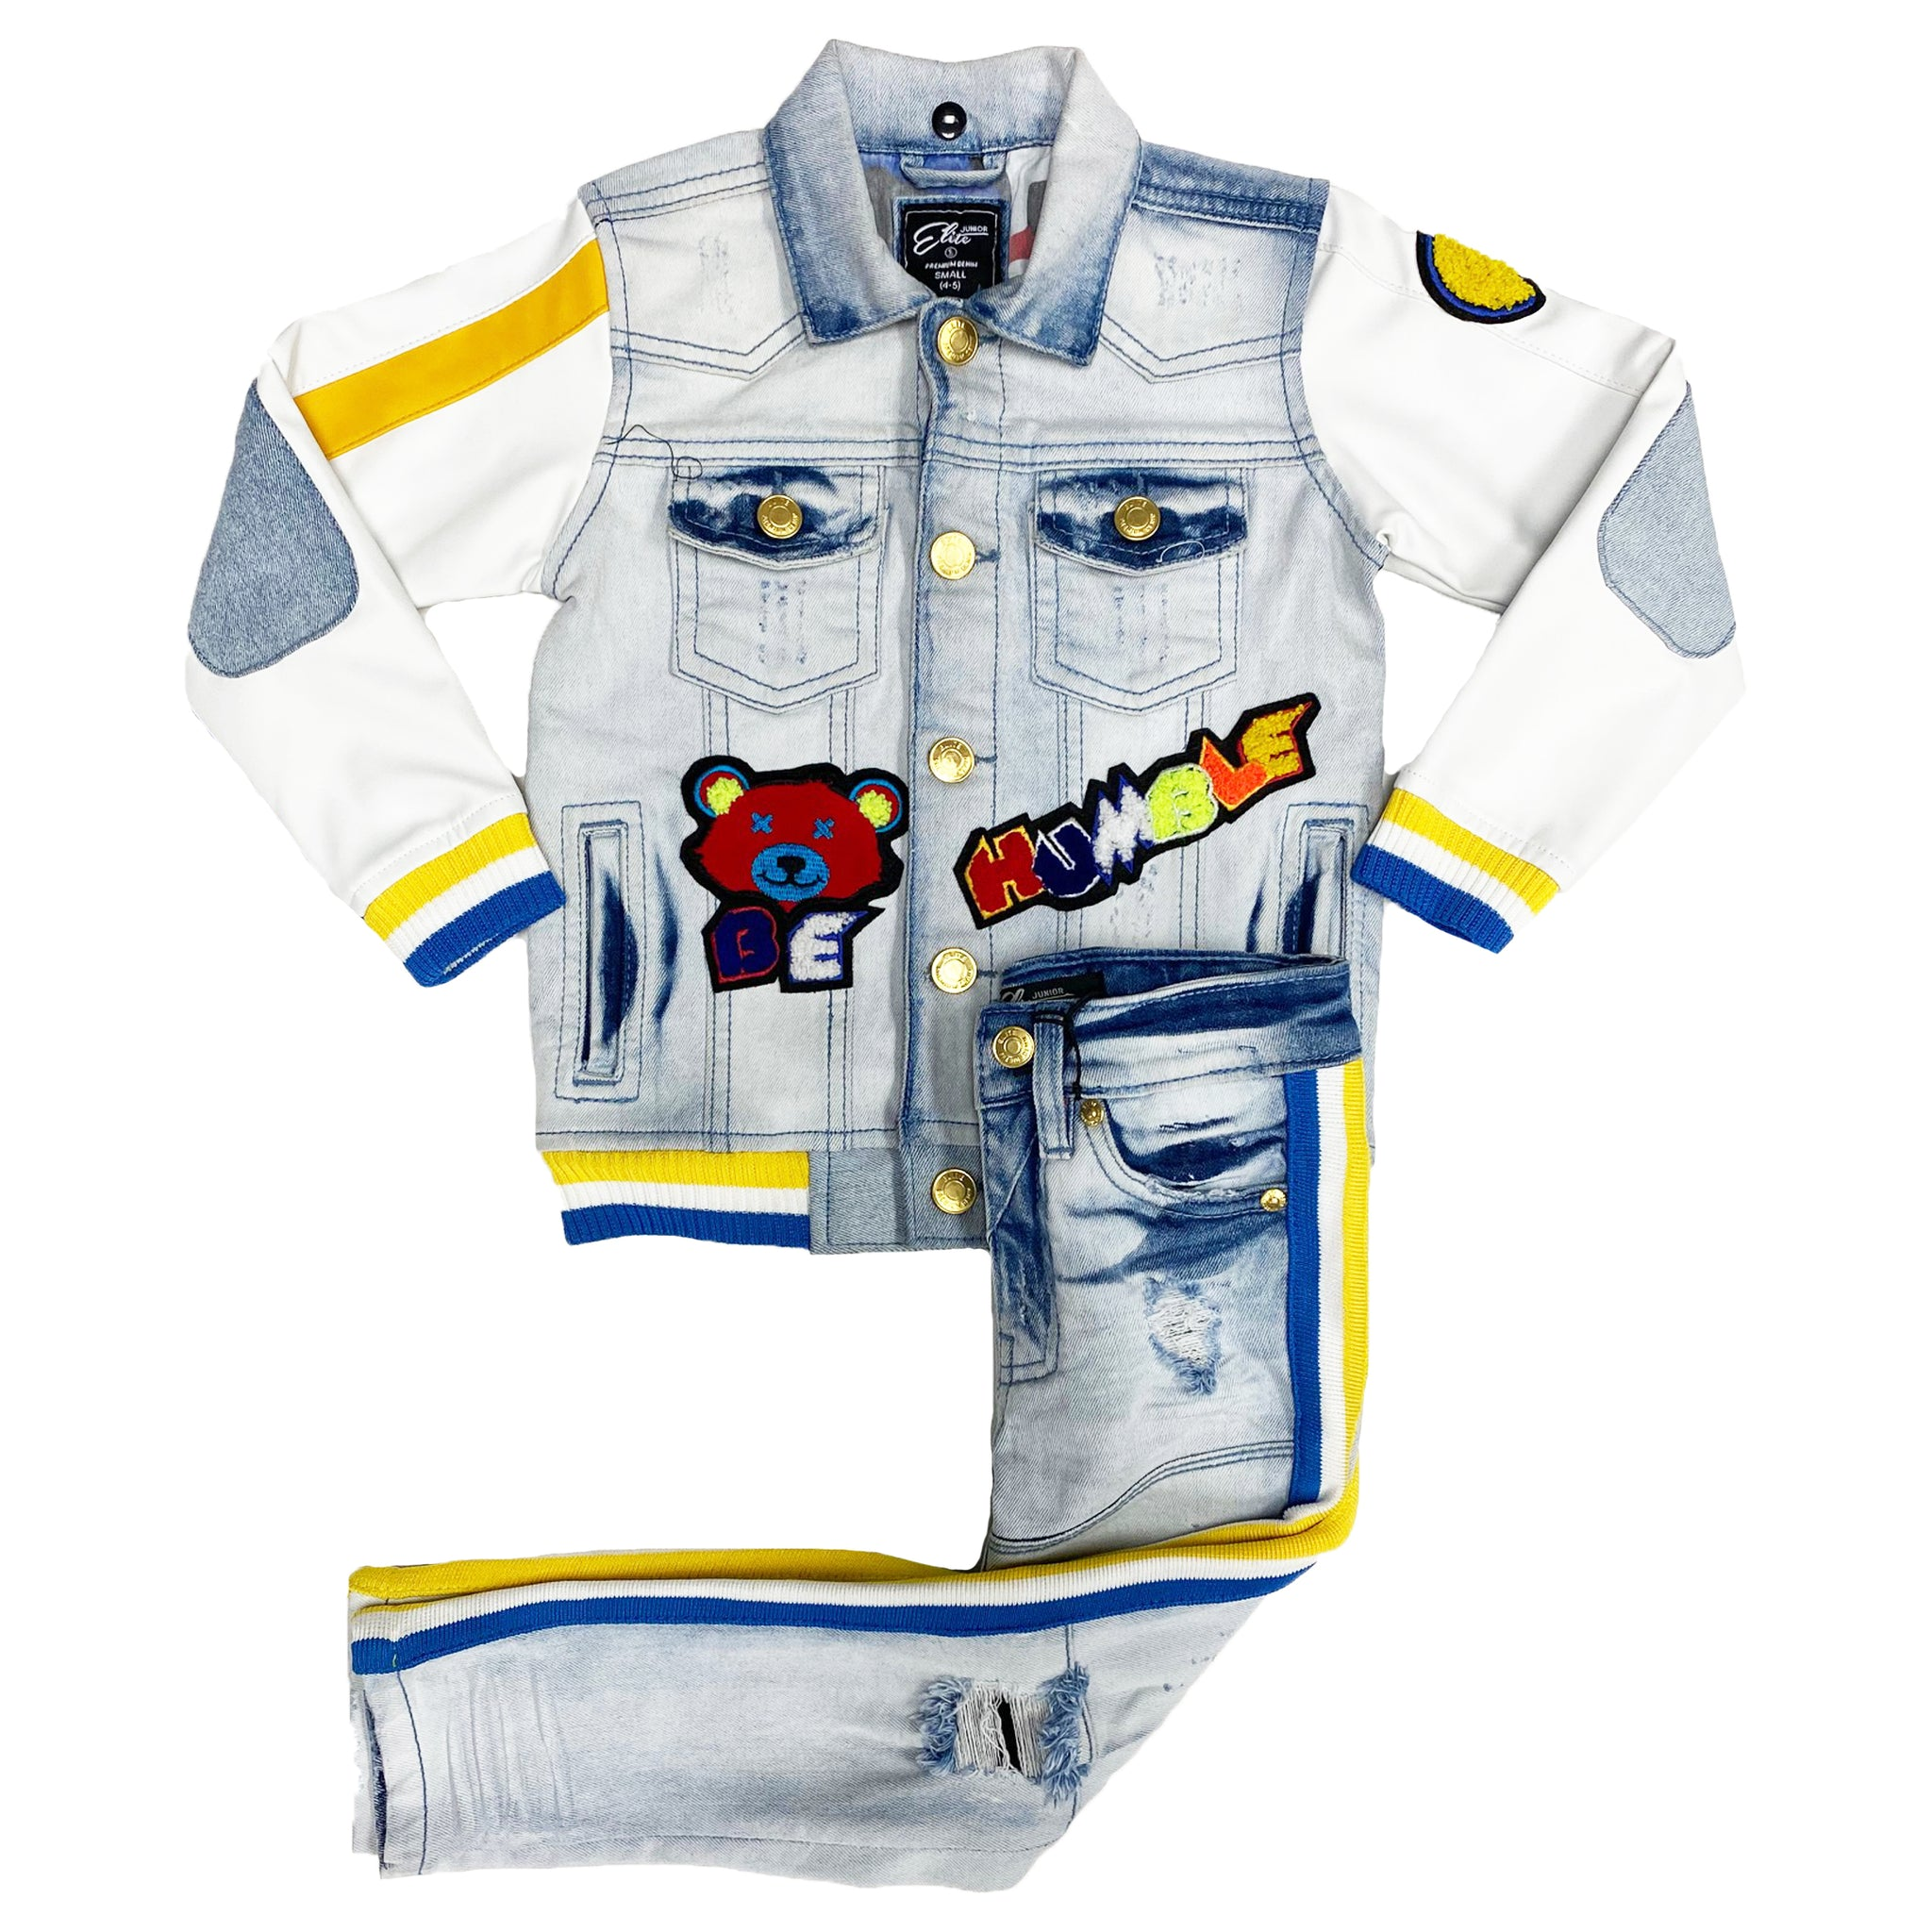 Kids Savage Denim Set - Elite Premium Denim